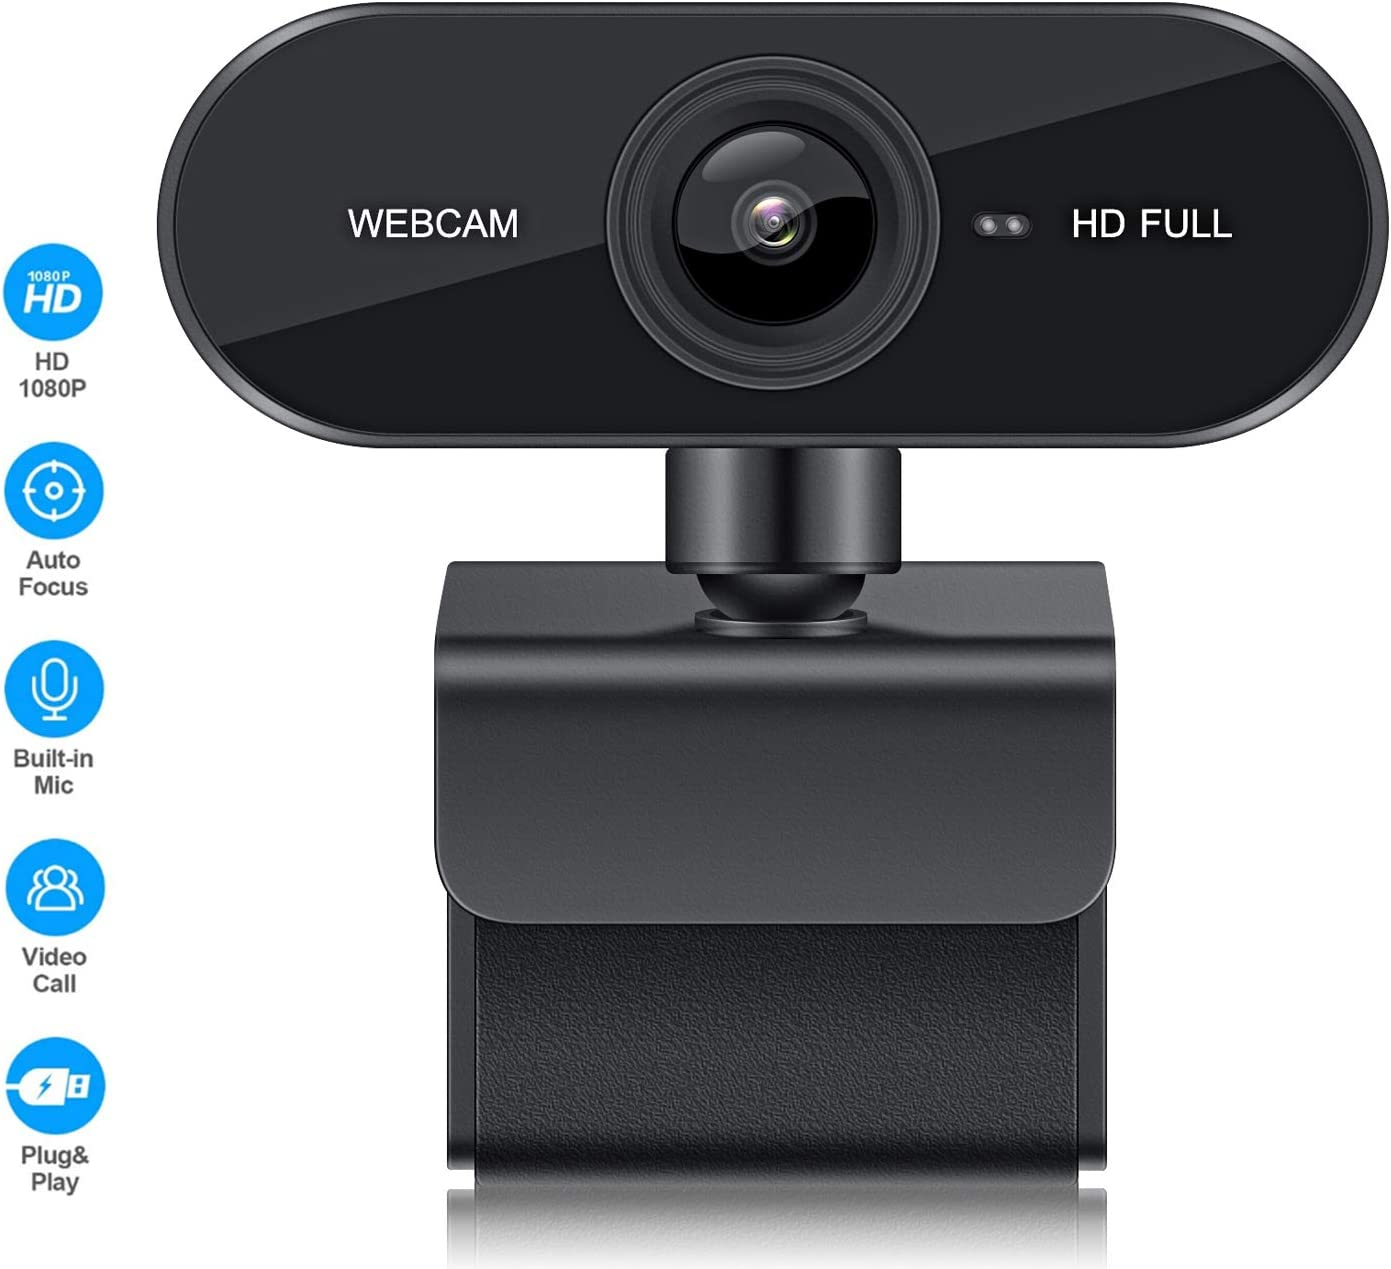 Webcam with Microphone, USB 2.0 1080P HD PC Camera Plug and Play Web Camera for Desktop, Laptop, Computer, Windows, Mac OS, Video Calling, Video Streaming, Conference, Gaming, Online Classes